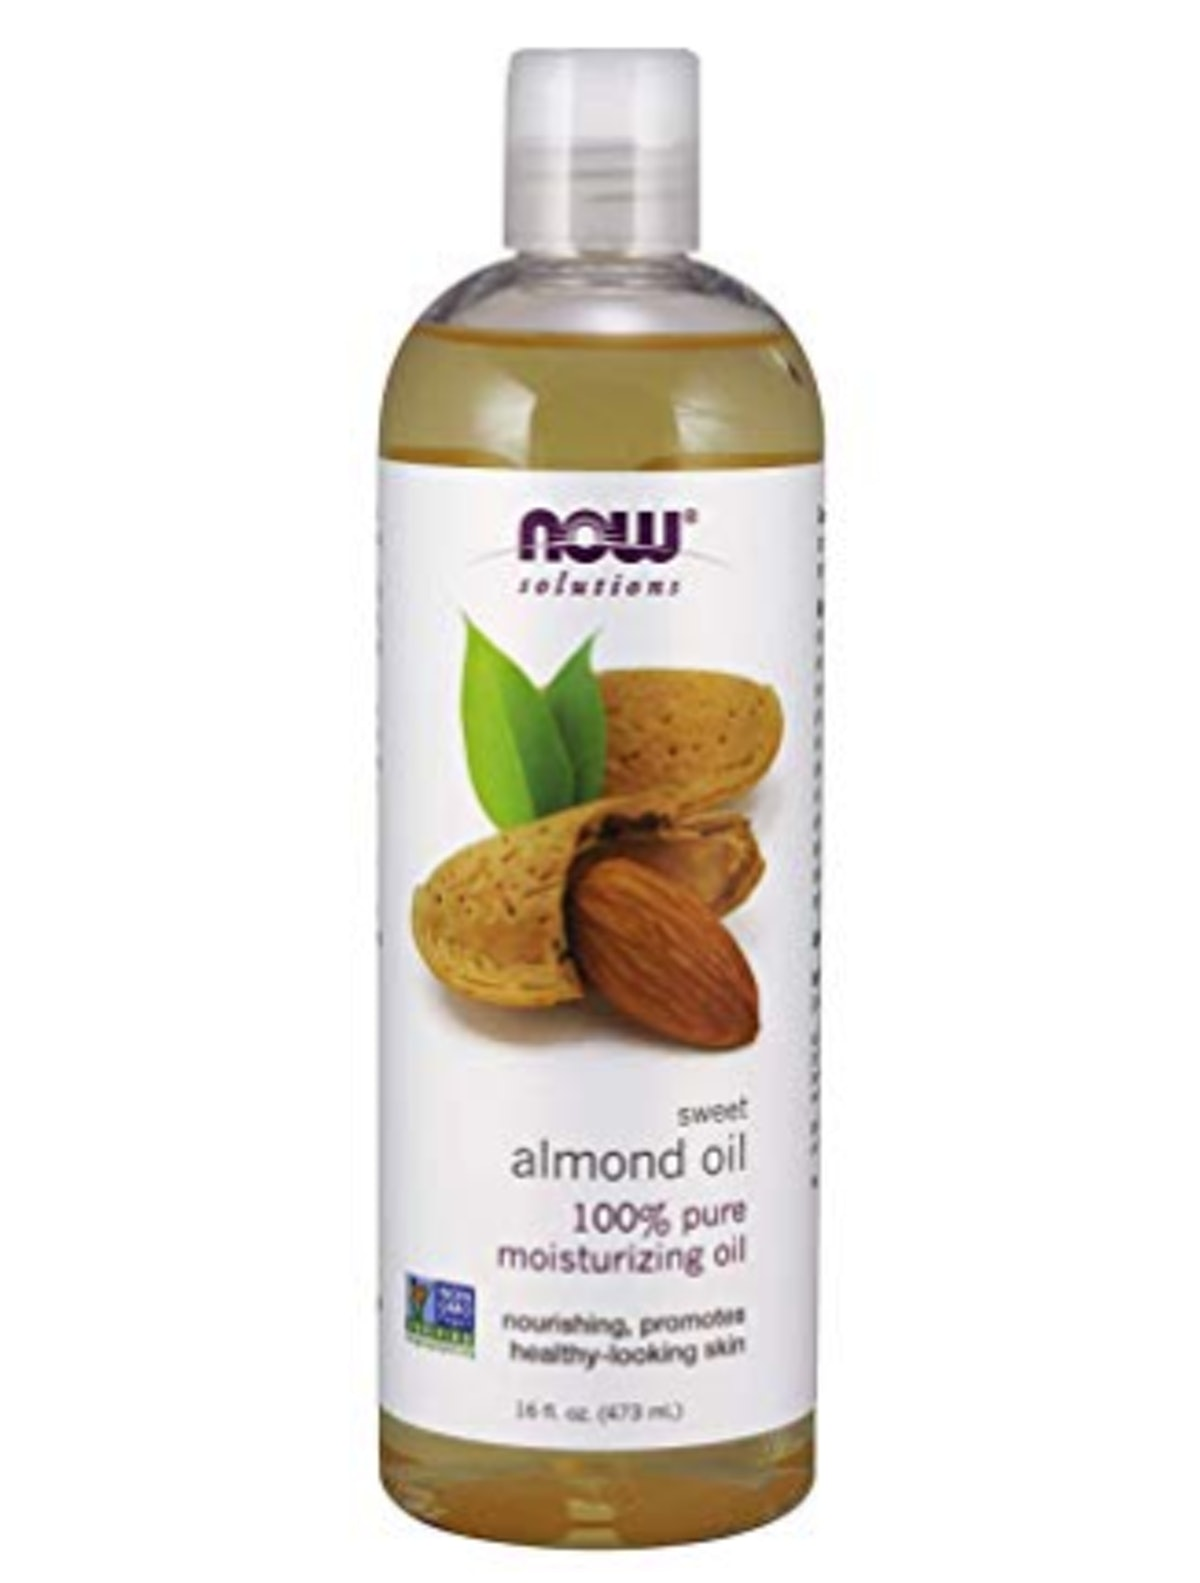 NOW Solutions, Sweet Almond Oil